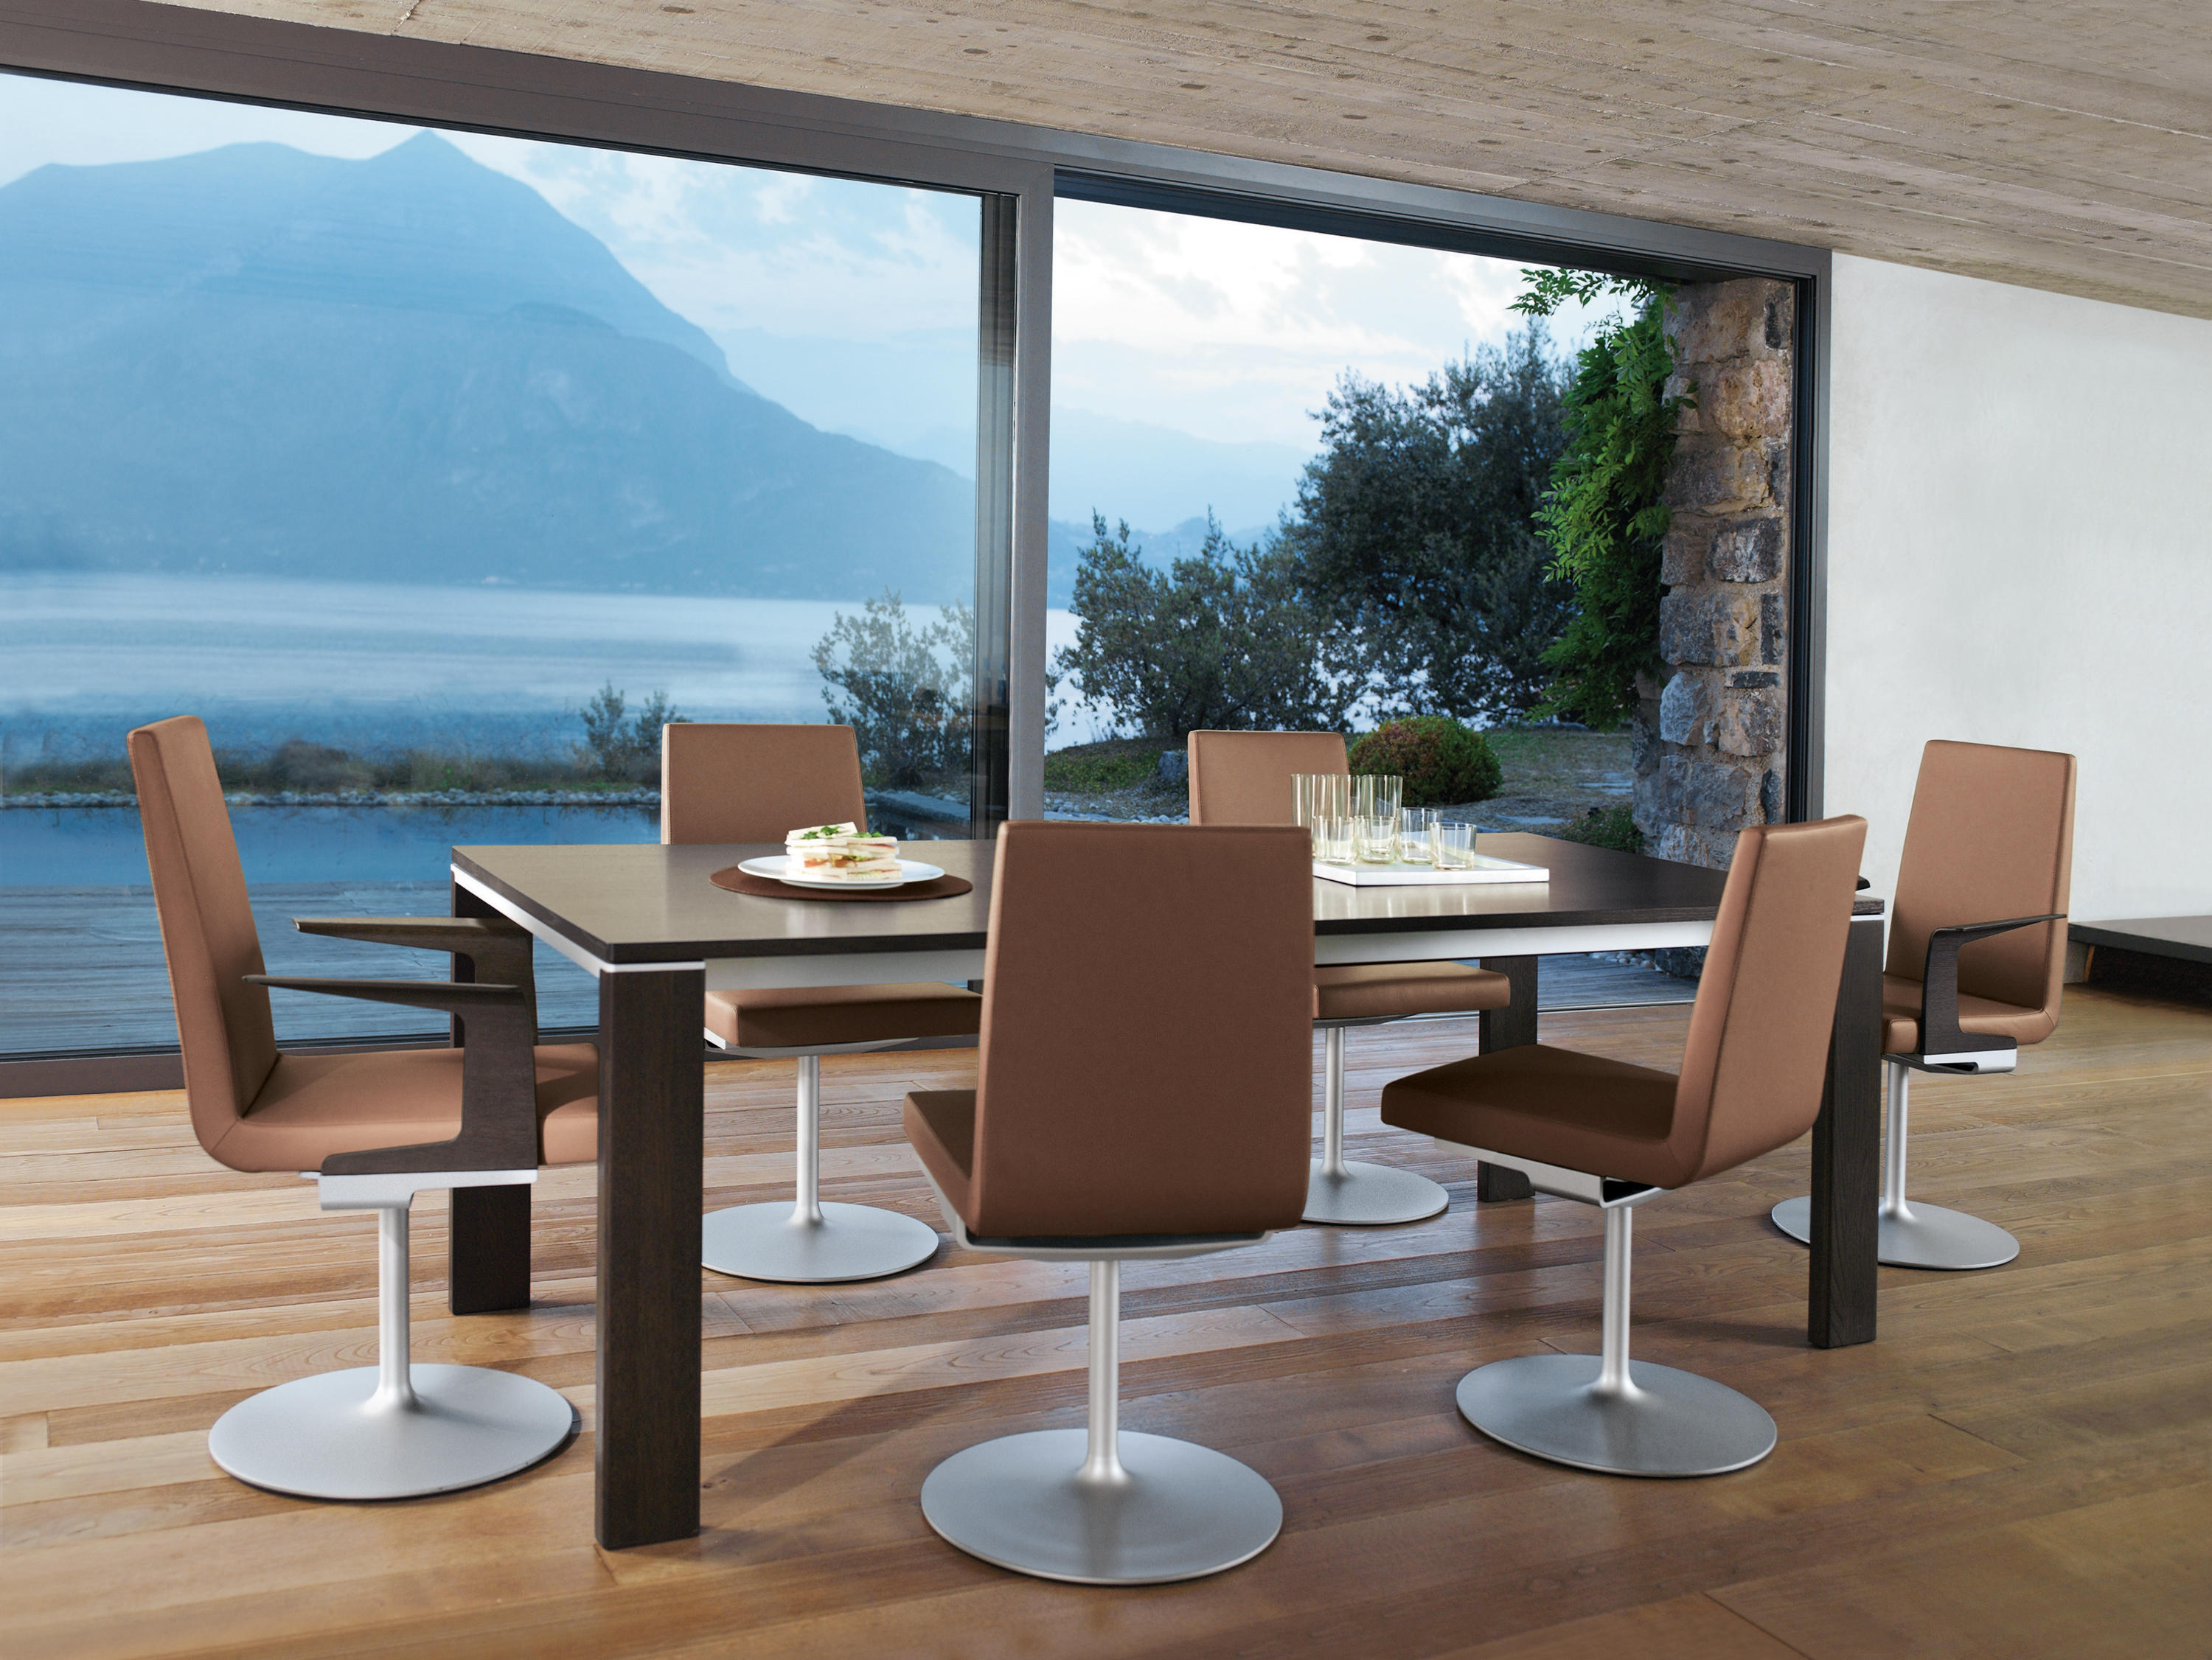 Rolf benz 620 bar stools from rolf benz architonic for Rolf benz 620